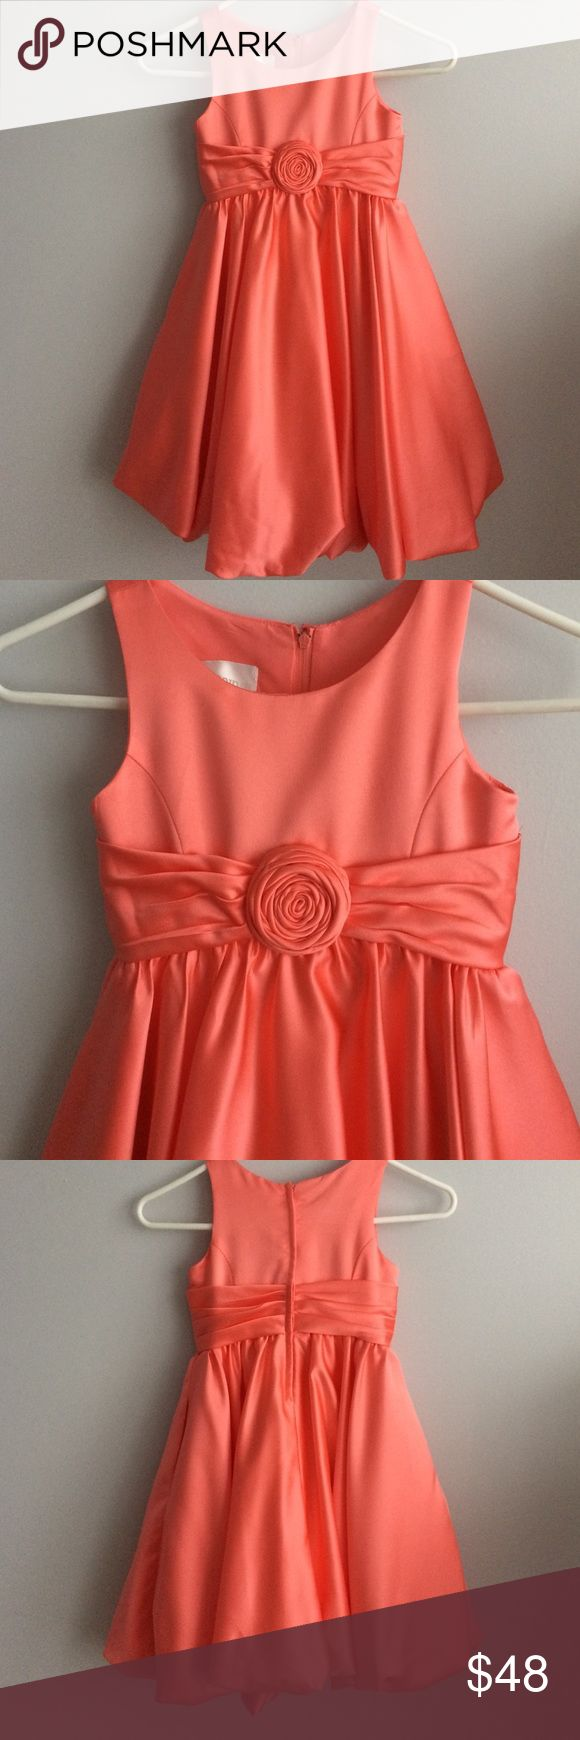 Girls Coral Dress Gorgeous coral reef girls dress, size 6, David's bridal, 100% polyester. Style KP1311. Dress is in excellent condition. Davids Bridal Dresses Formal